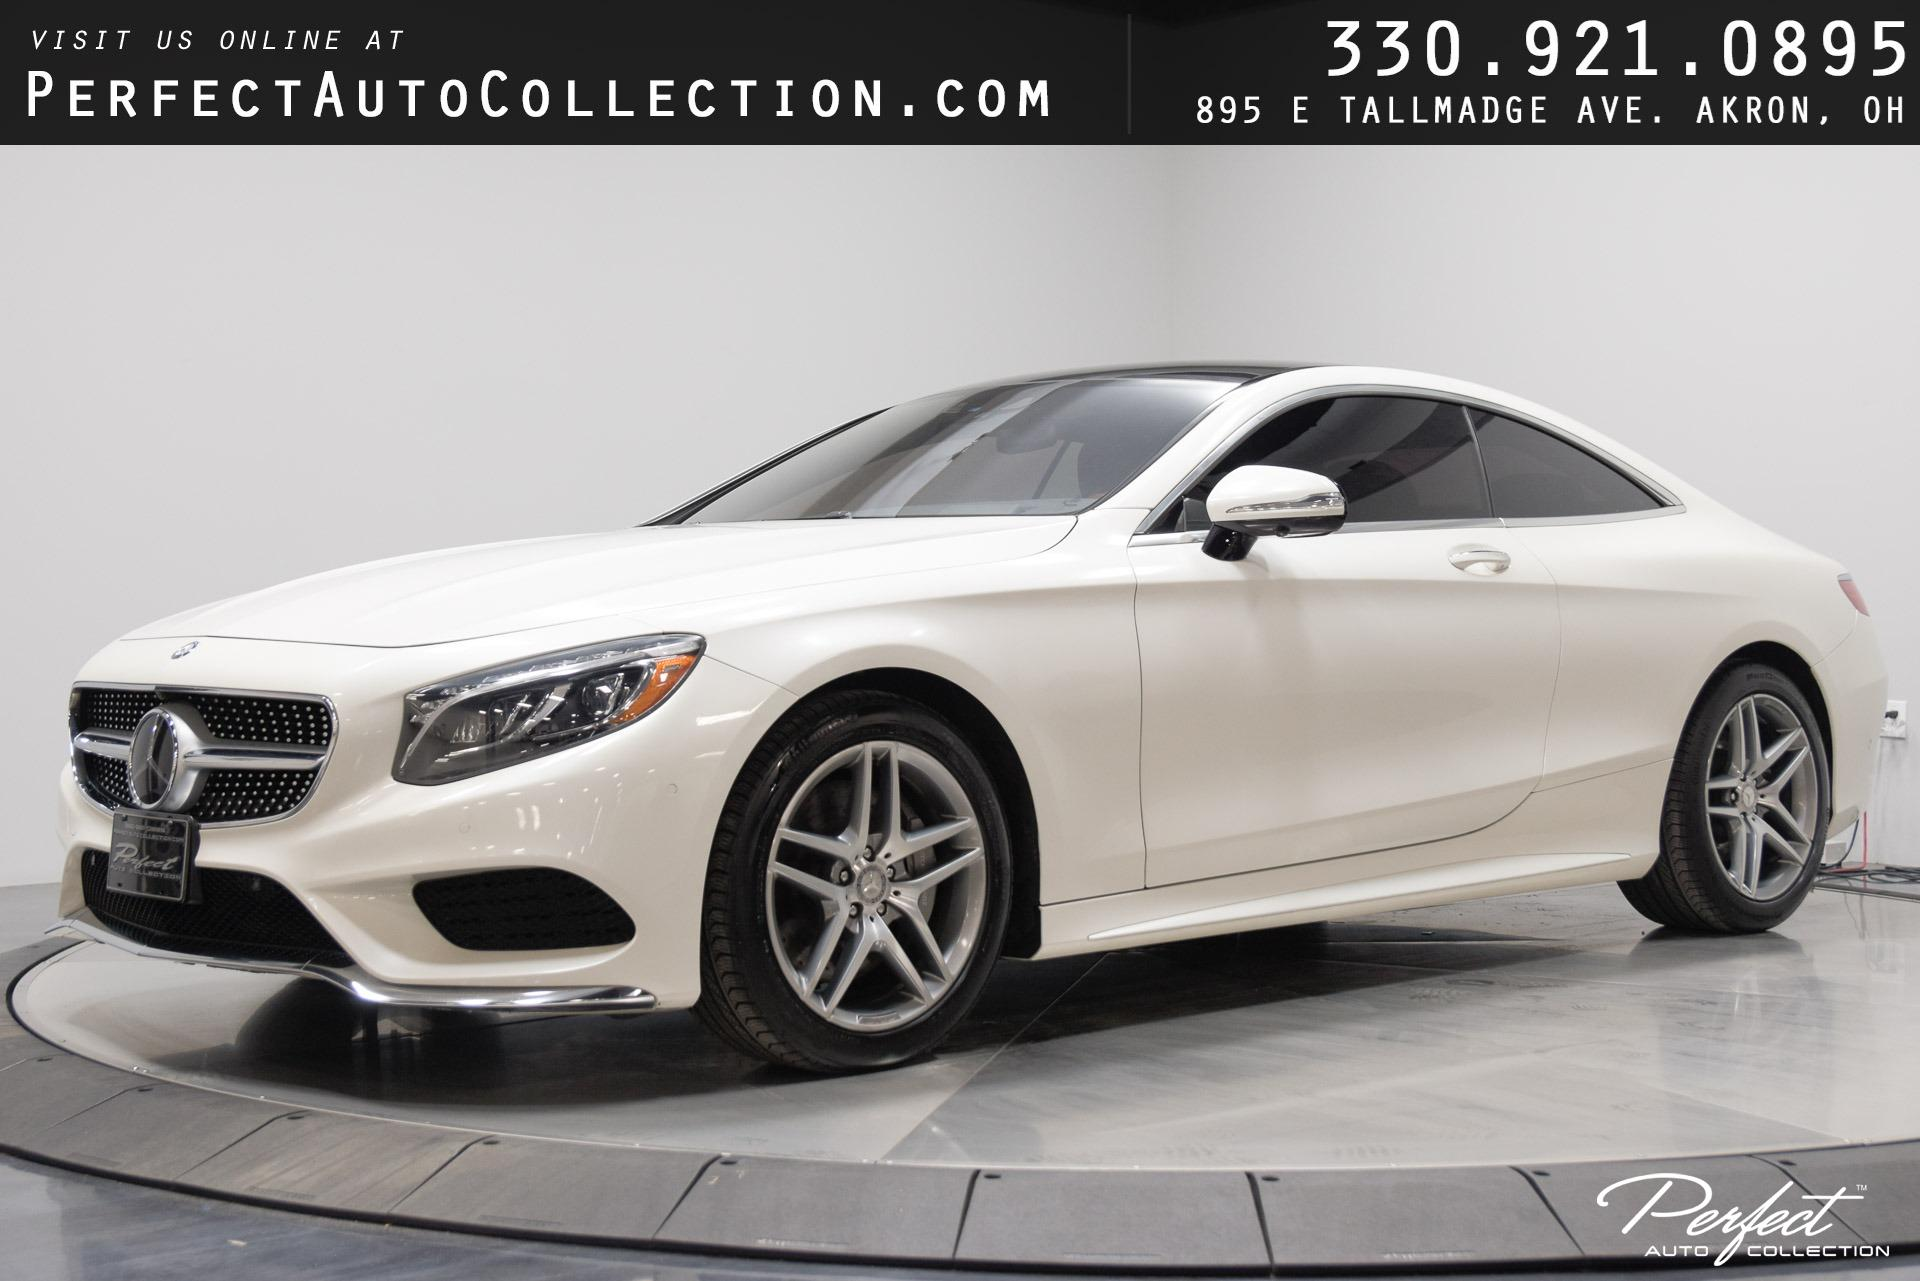 Used 2016 Mercedes-Benz S-Class S 550 4MATIC for sale Sold at Perfect Auto Collection in Akron OH 44310 1